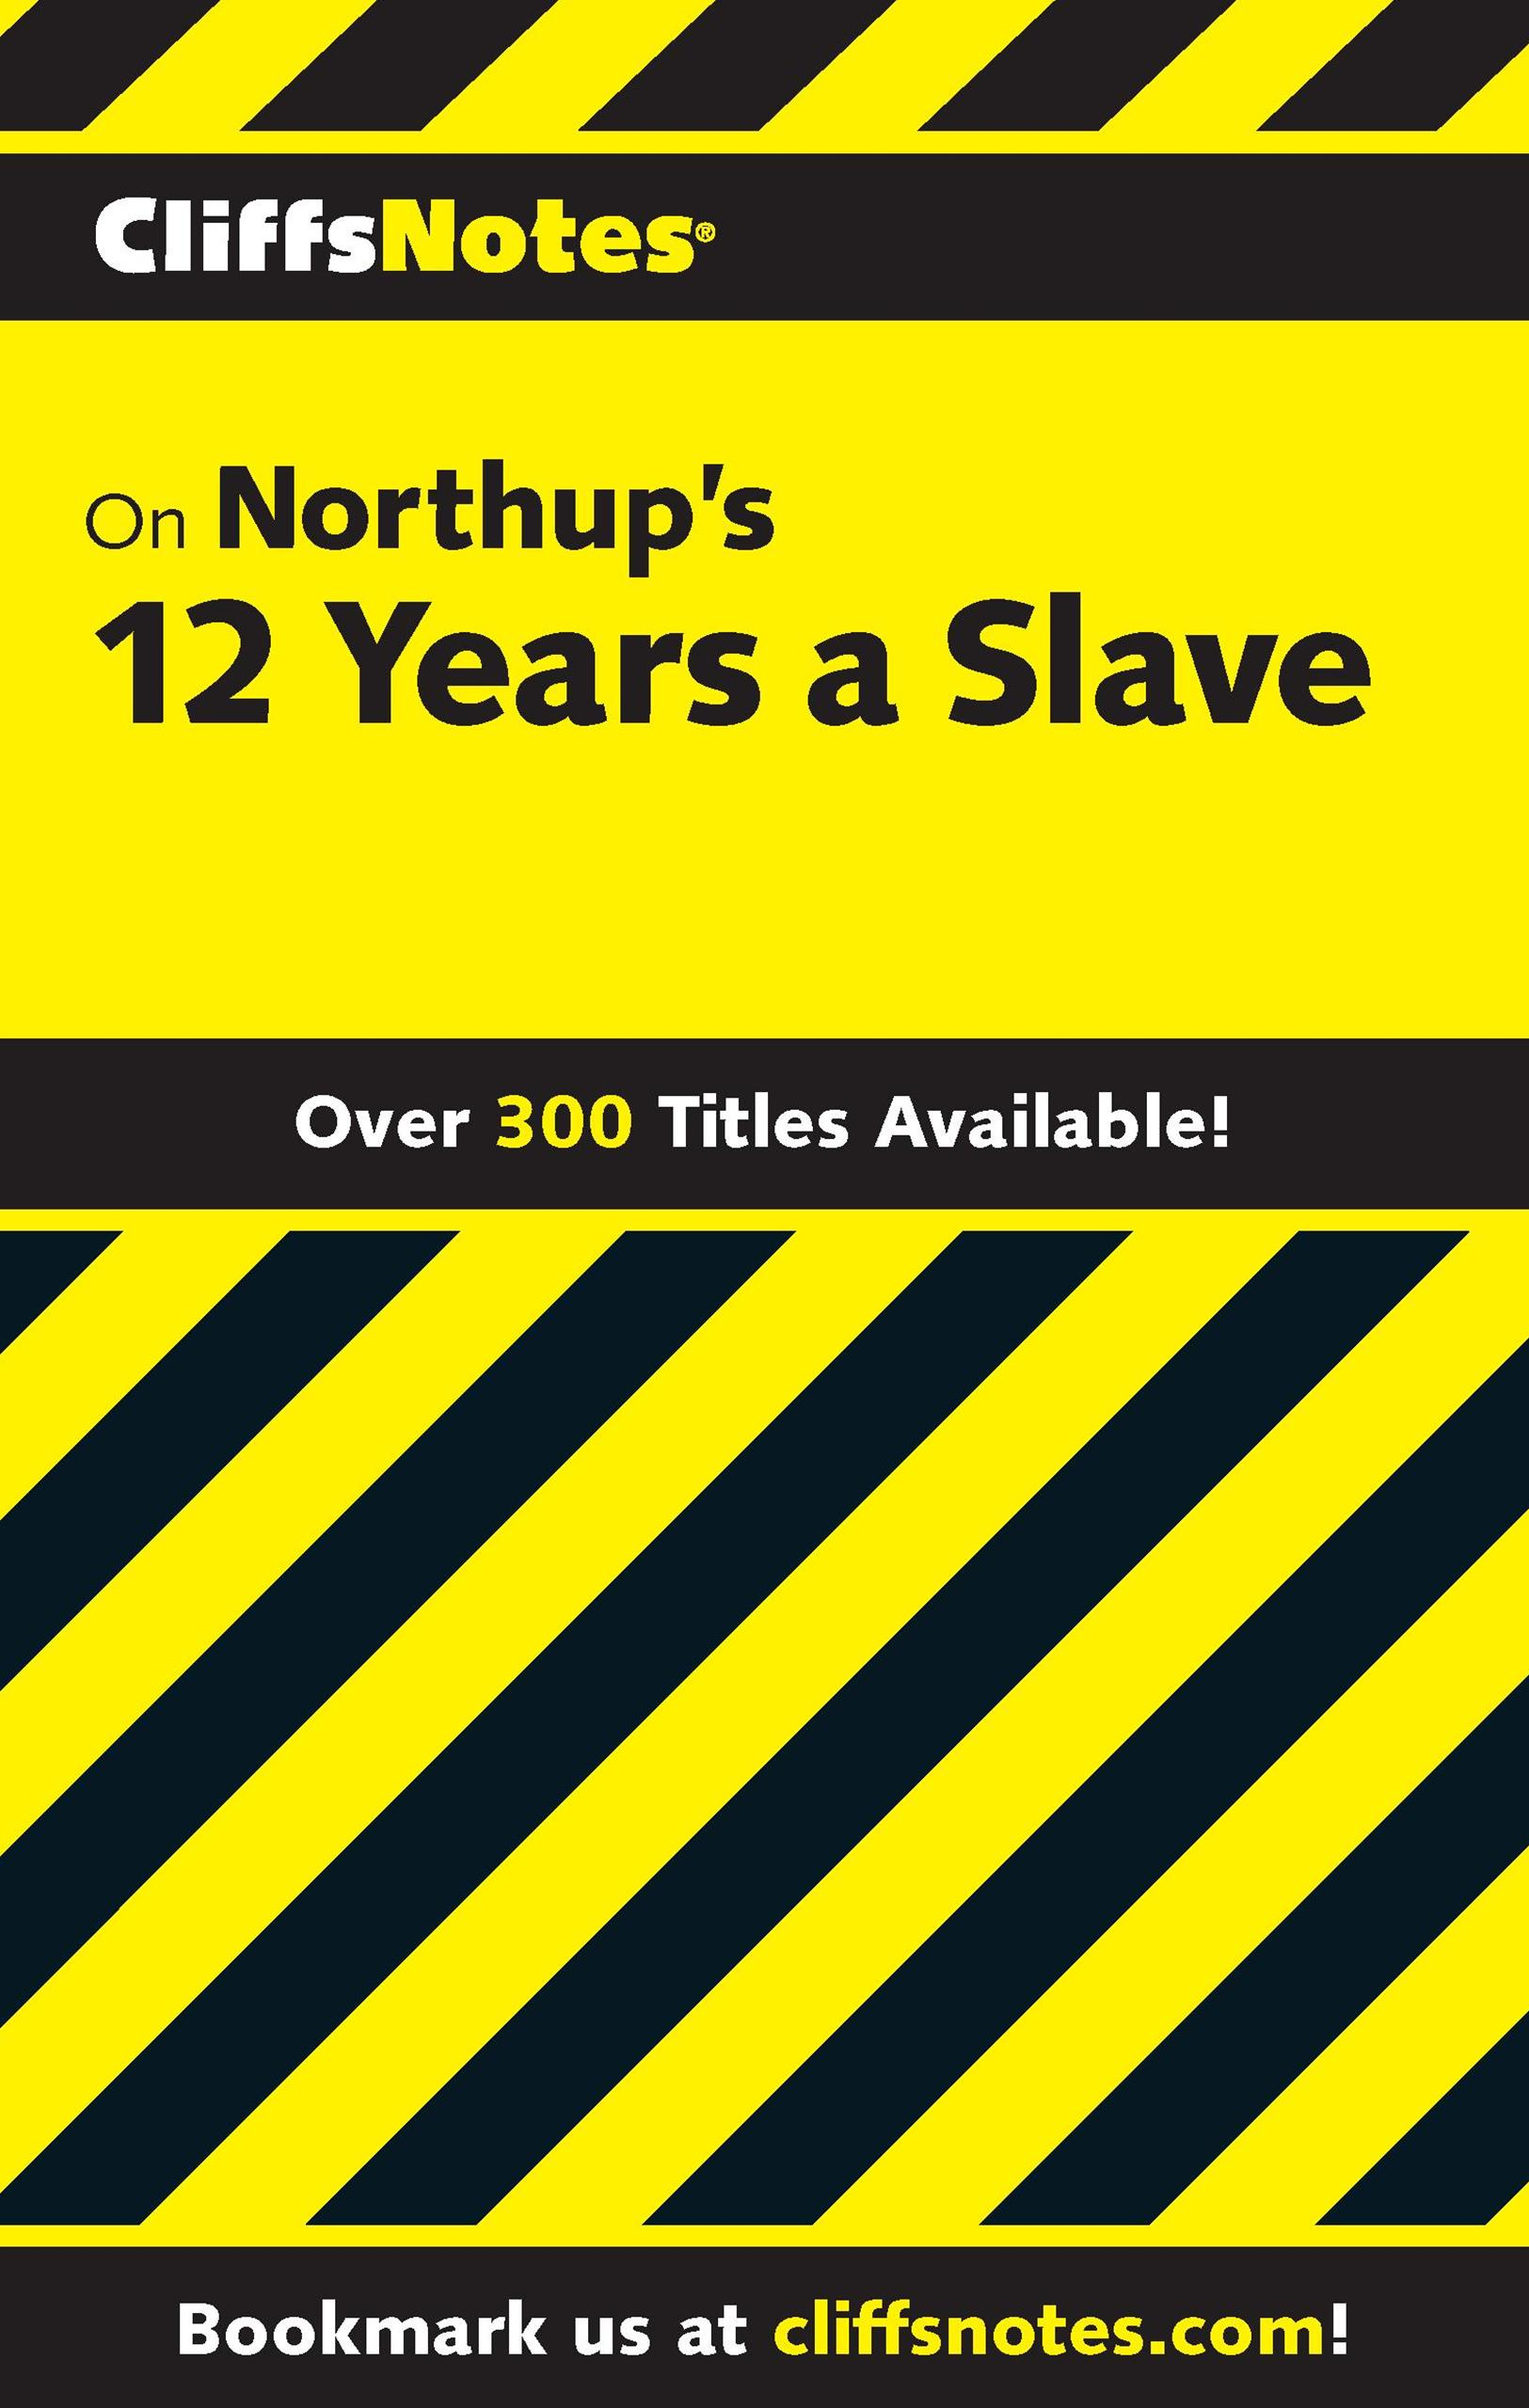 CliffsNotes on Northup's 12 Years a Slave